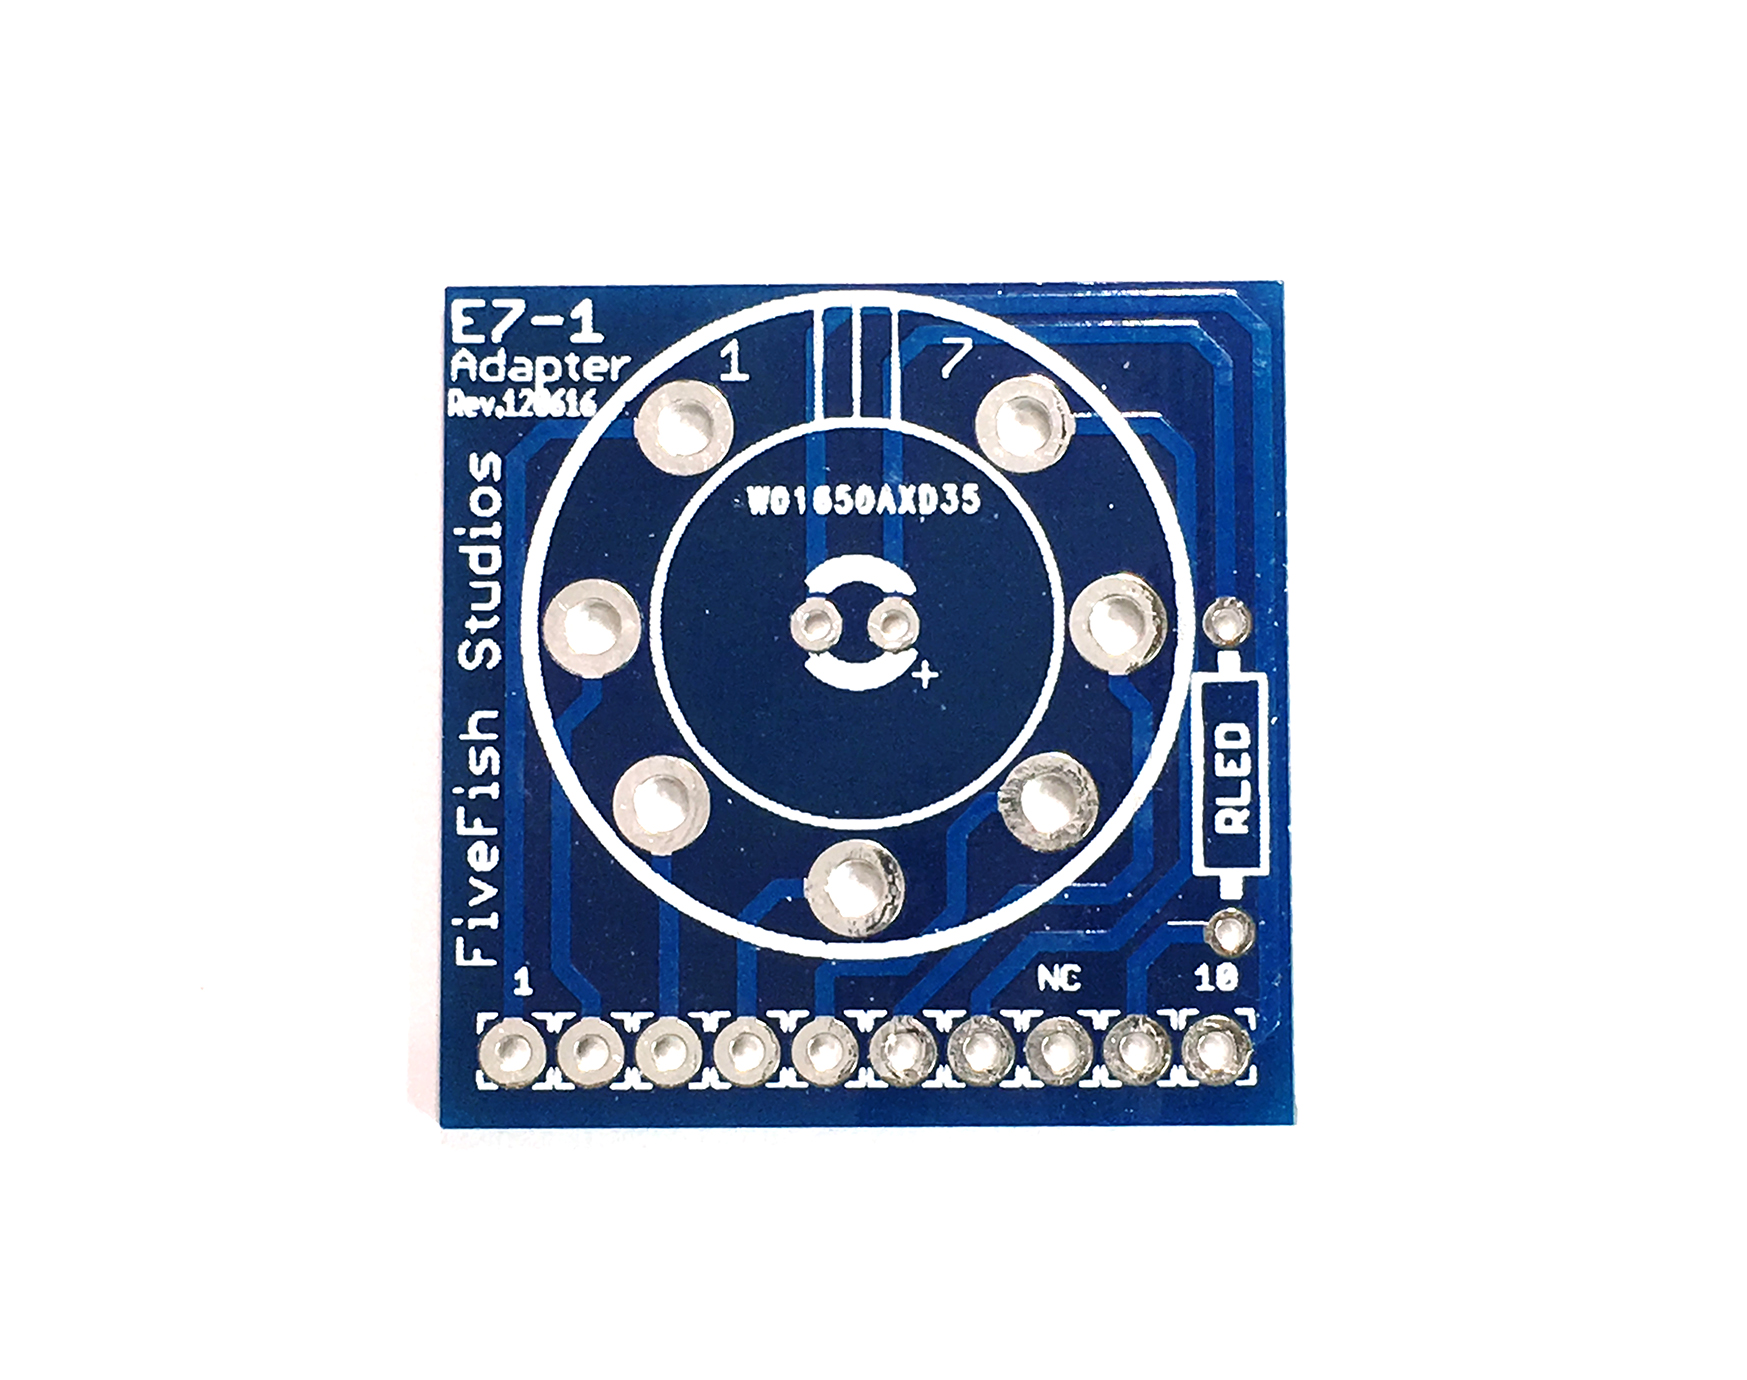 Part 5 Designing The Printed Circuit Board Fivefish Audio Blog Next Step In Diy Pcb Fabrication After You Know How Version 10 Boards Go Somehow Well Find A Mistake Or Two We Received Physical Doesnt Matter Much Review